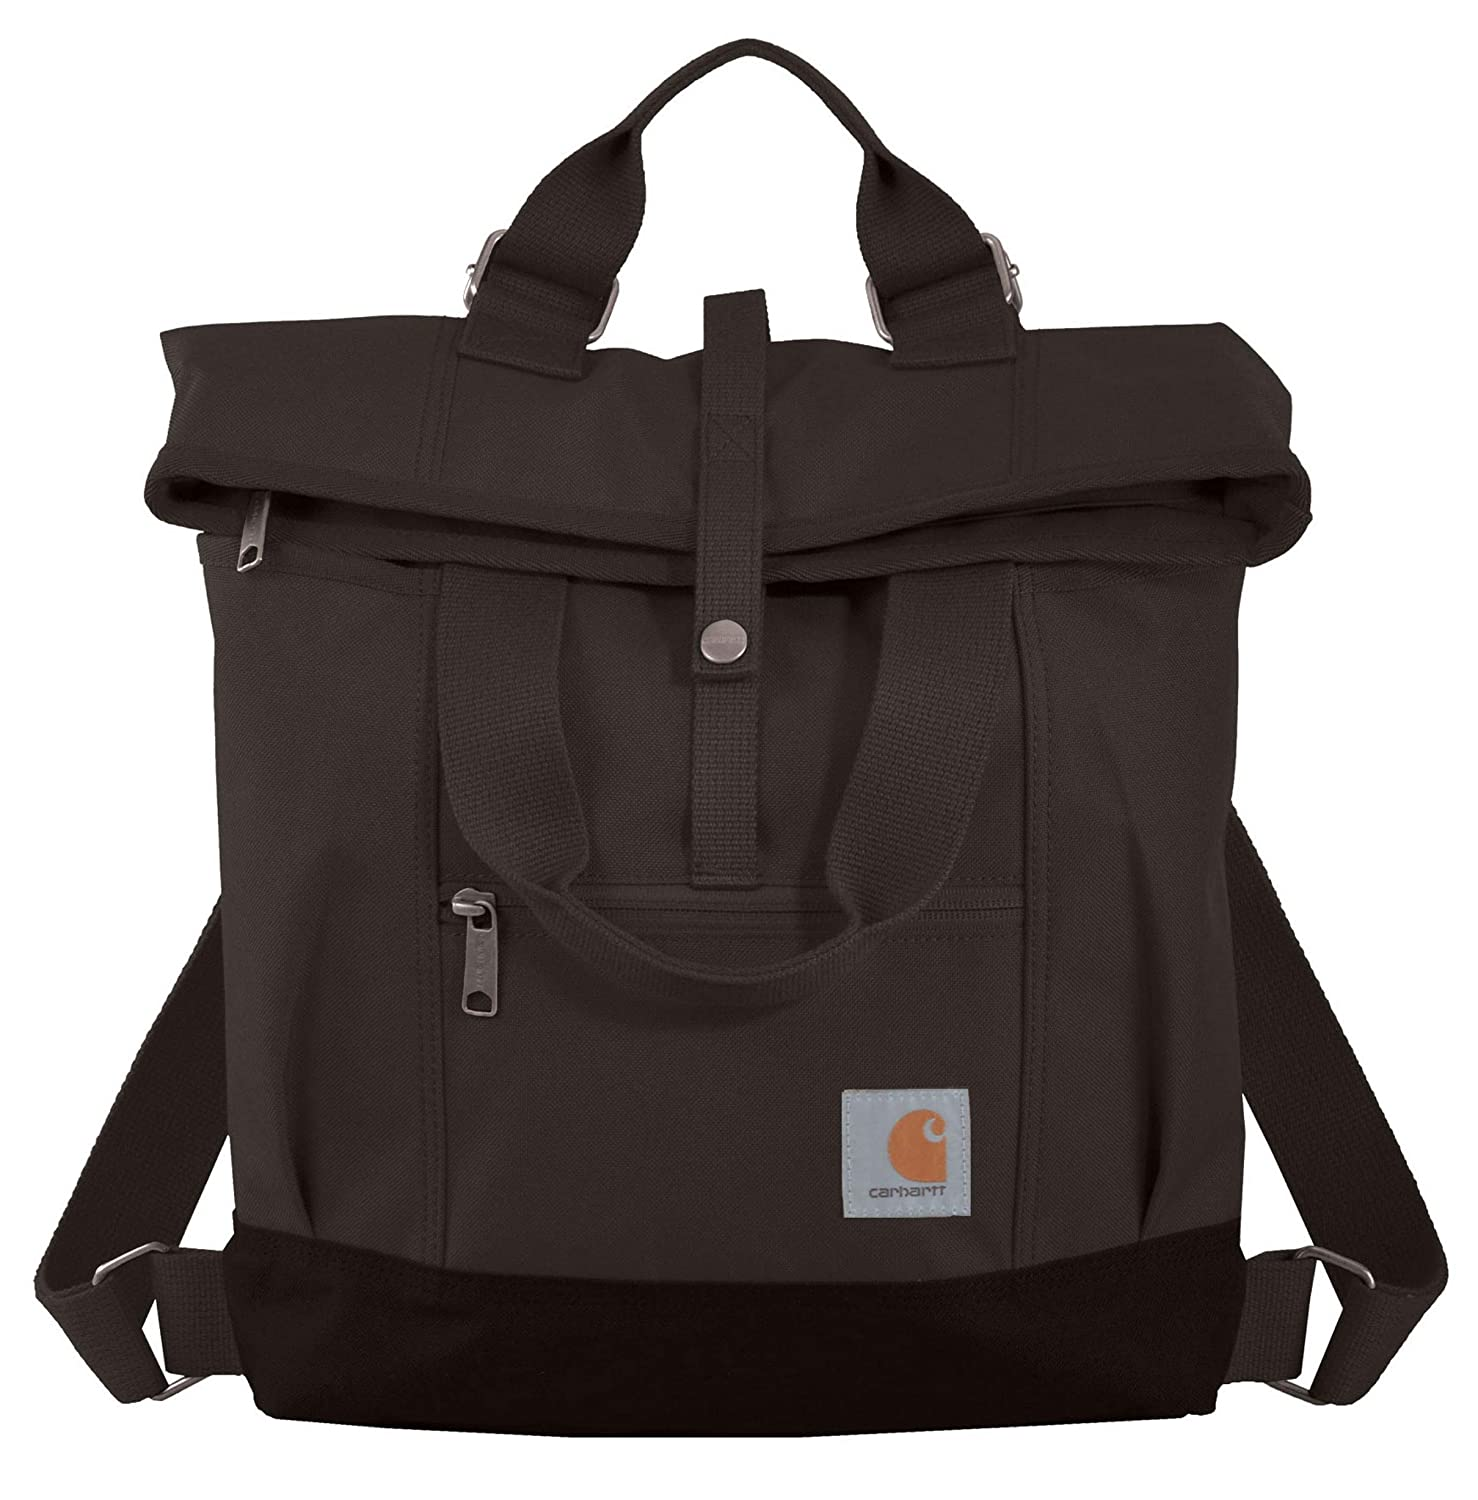 release info on colours and striking amazing selection Carhartt Legacy Women's Hybrid Convertible Backpack Tote Bag, Black